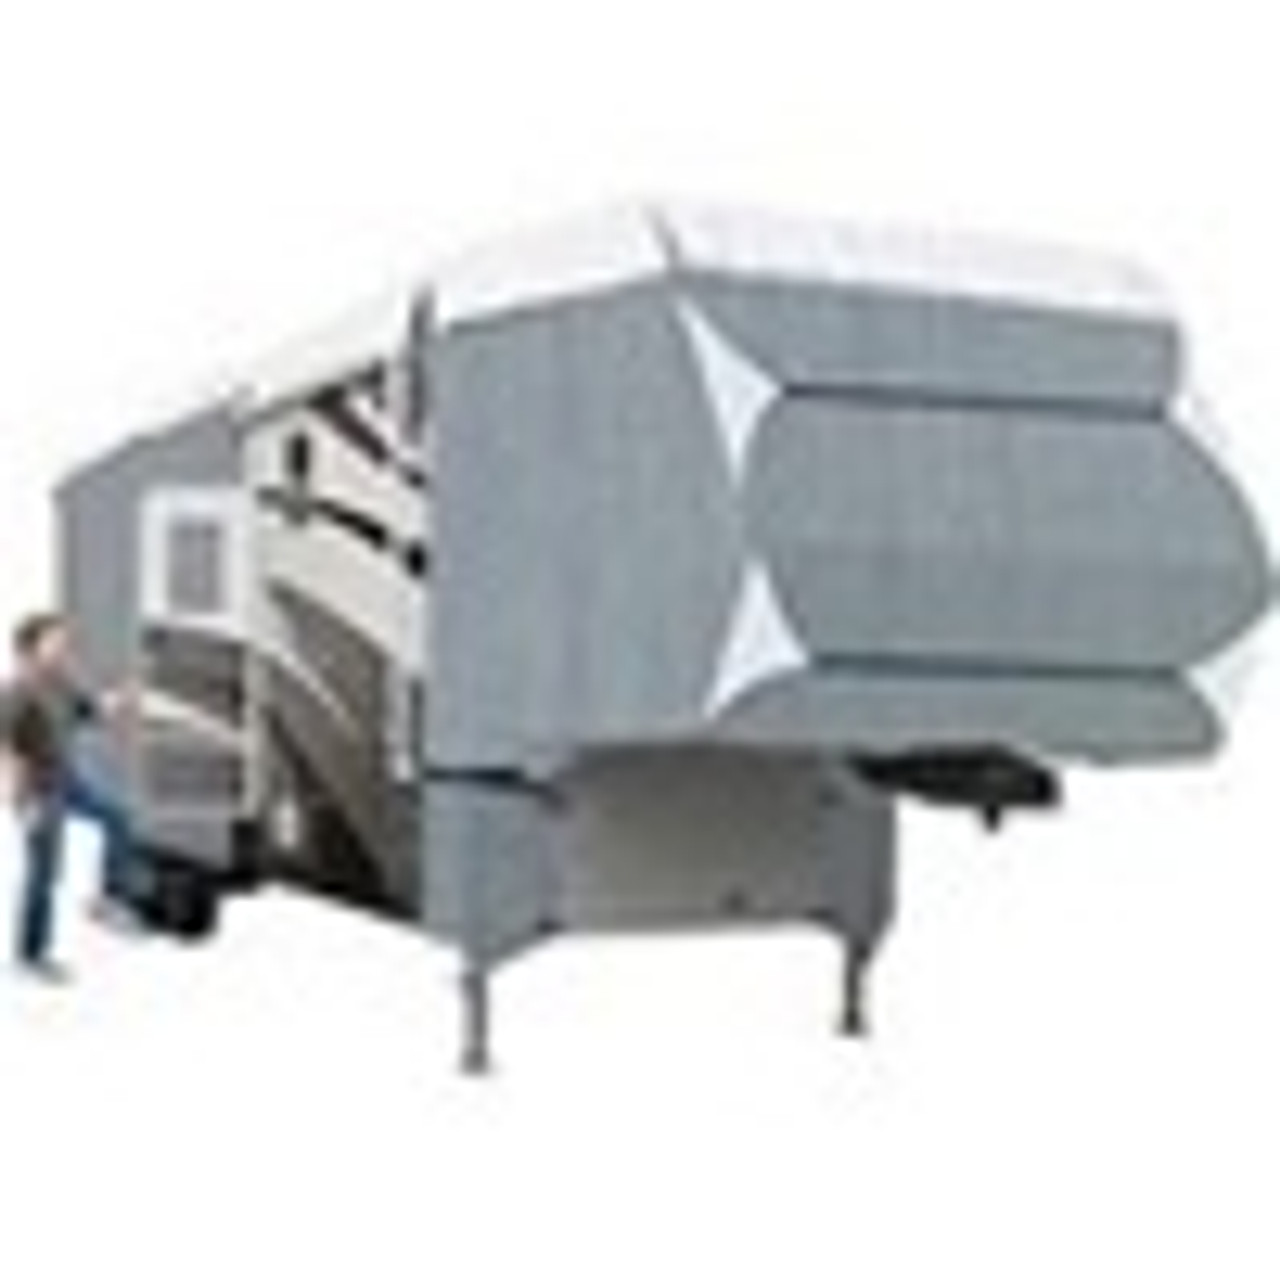 PolyPro III Deluxe Extra Tall 5th Wheel Cover